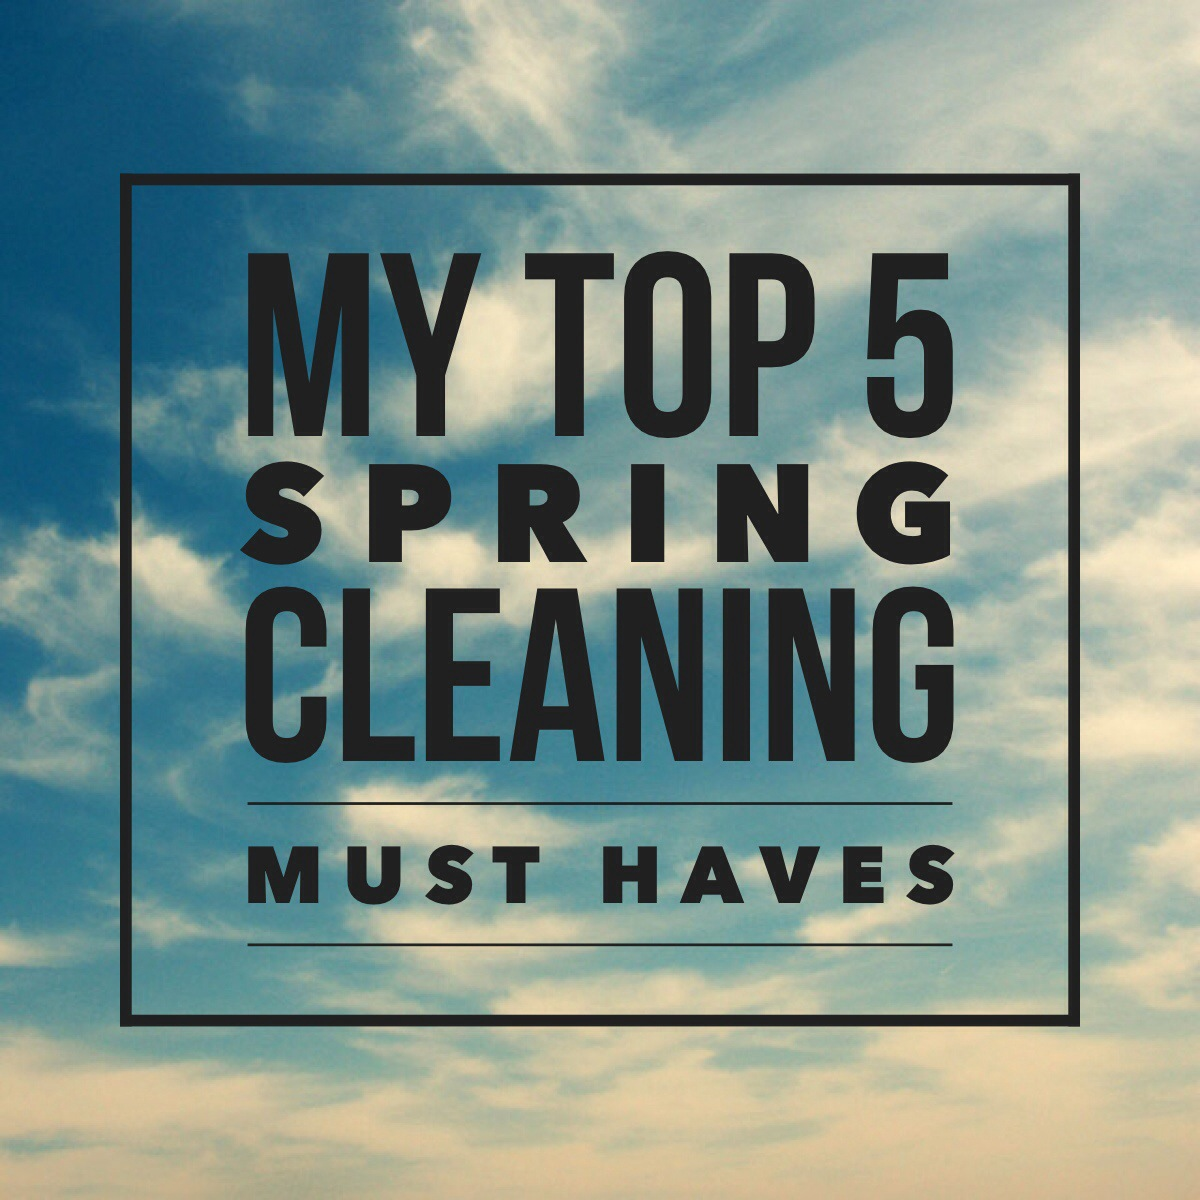 My Top 5 Spring Cleaning Must Haves + Soniclean Vt Plus Vacuum Review